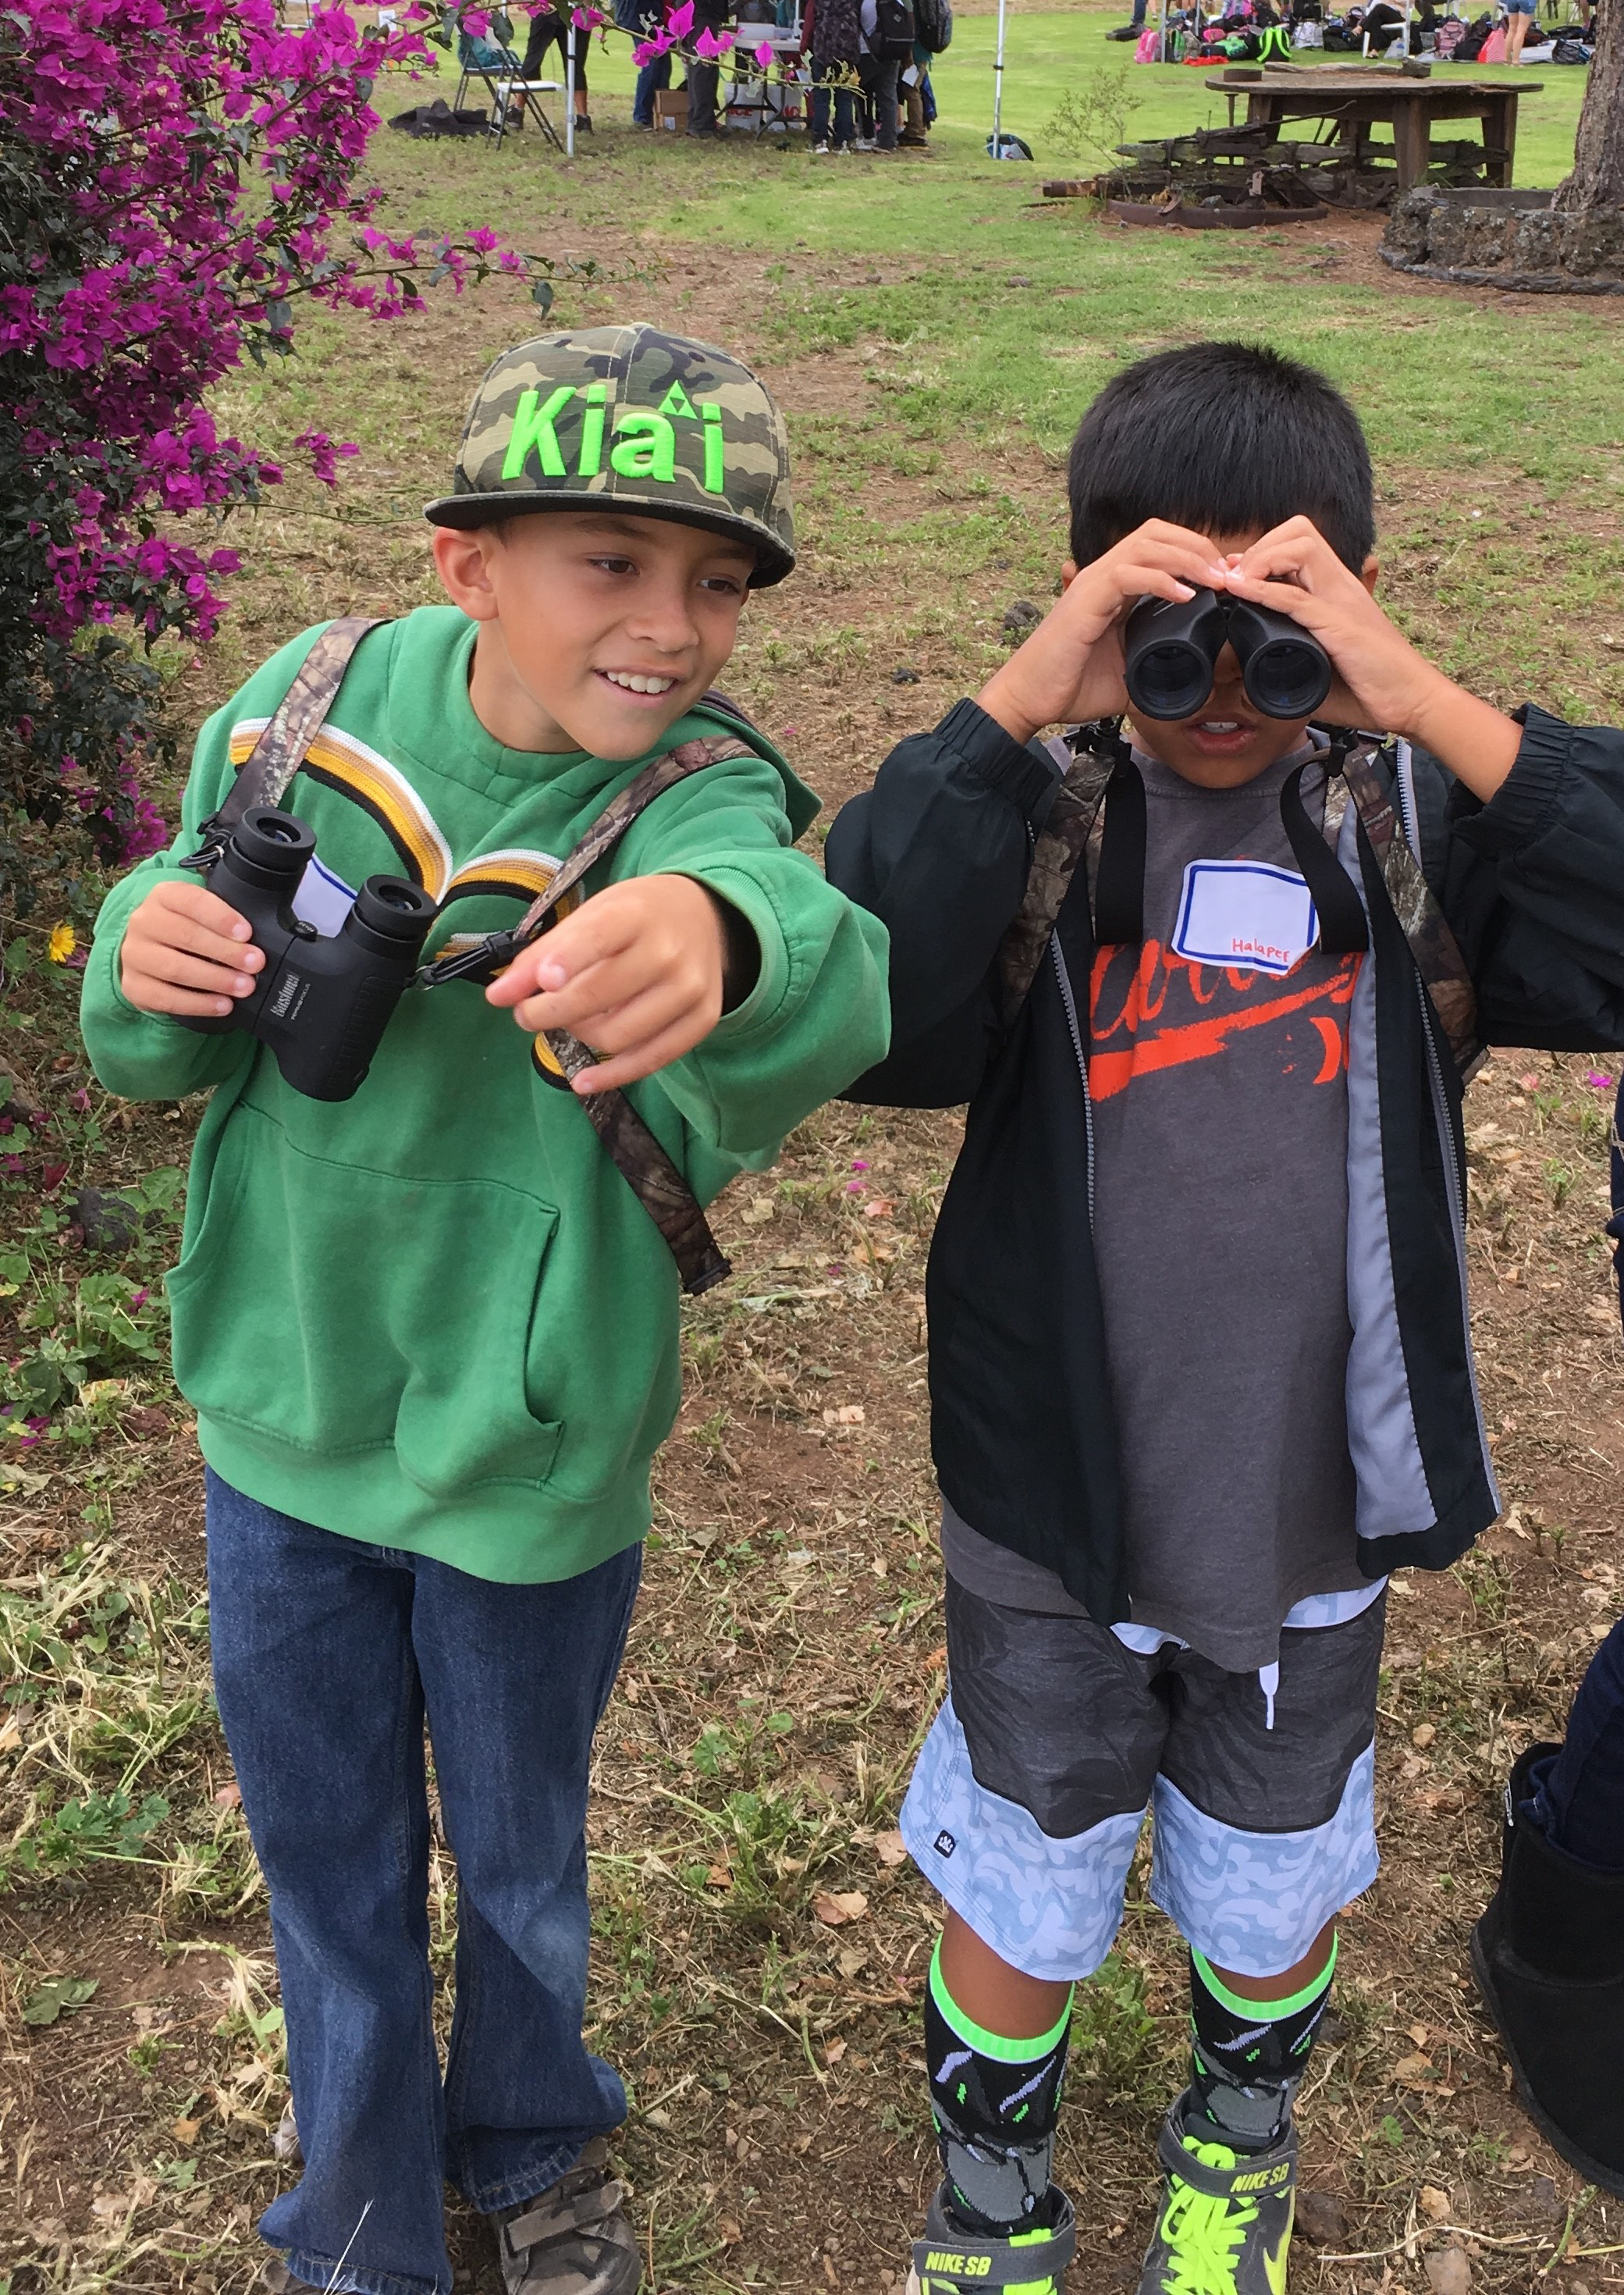 Photo: Tow kids looking through binoculars at native birds (off-camera). One of the kids is pointing at the birds.